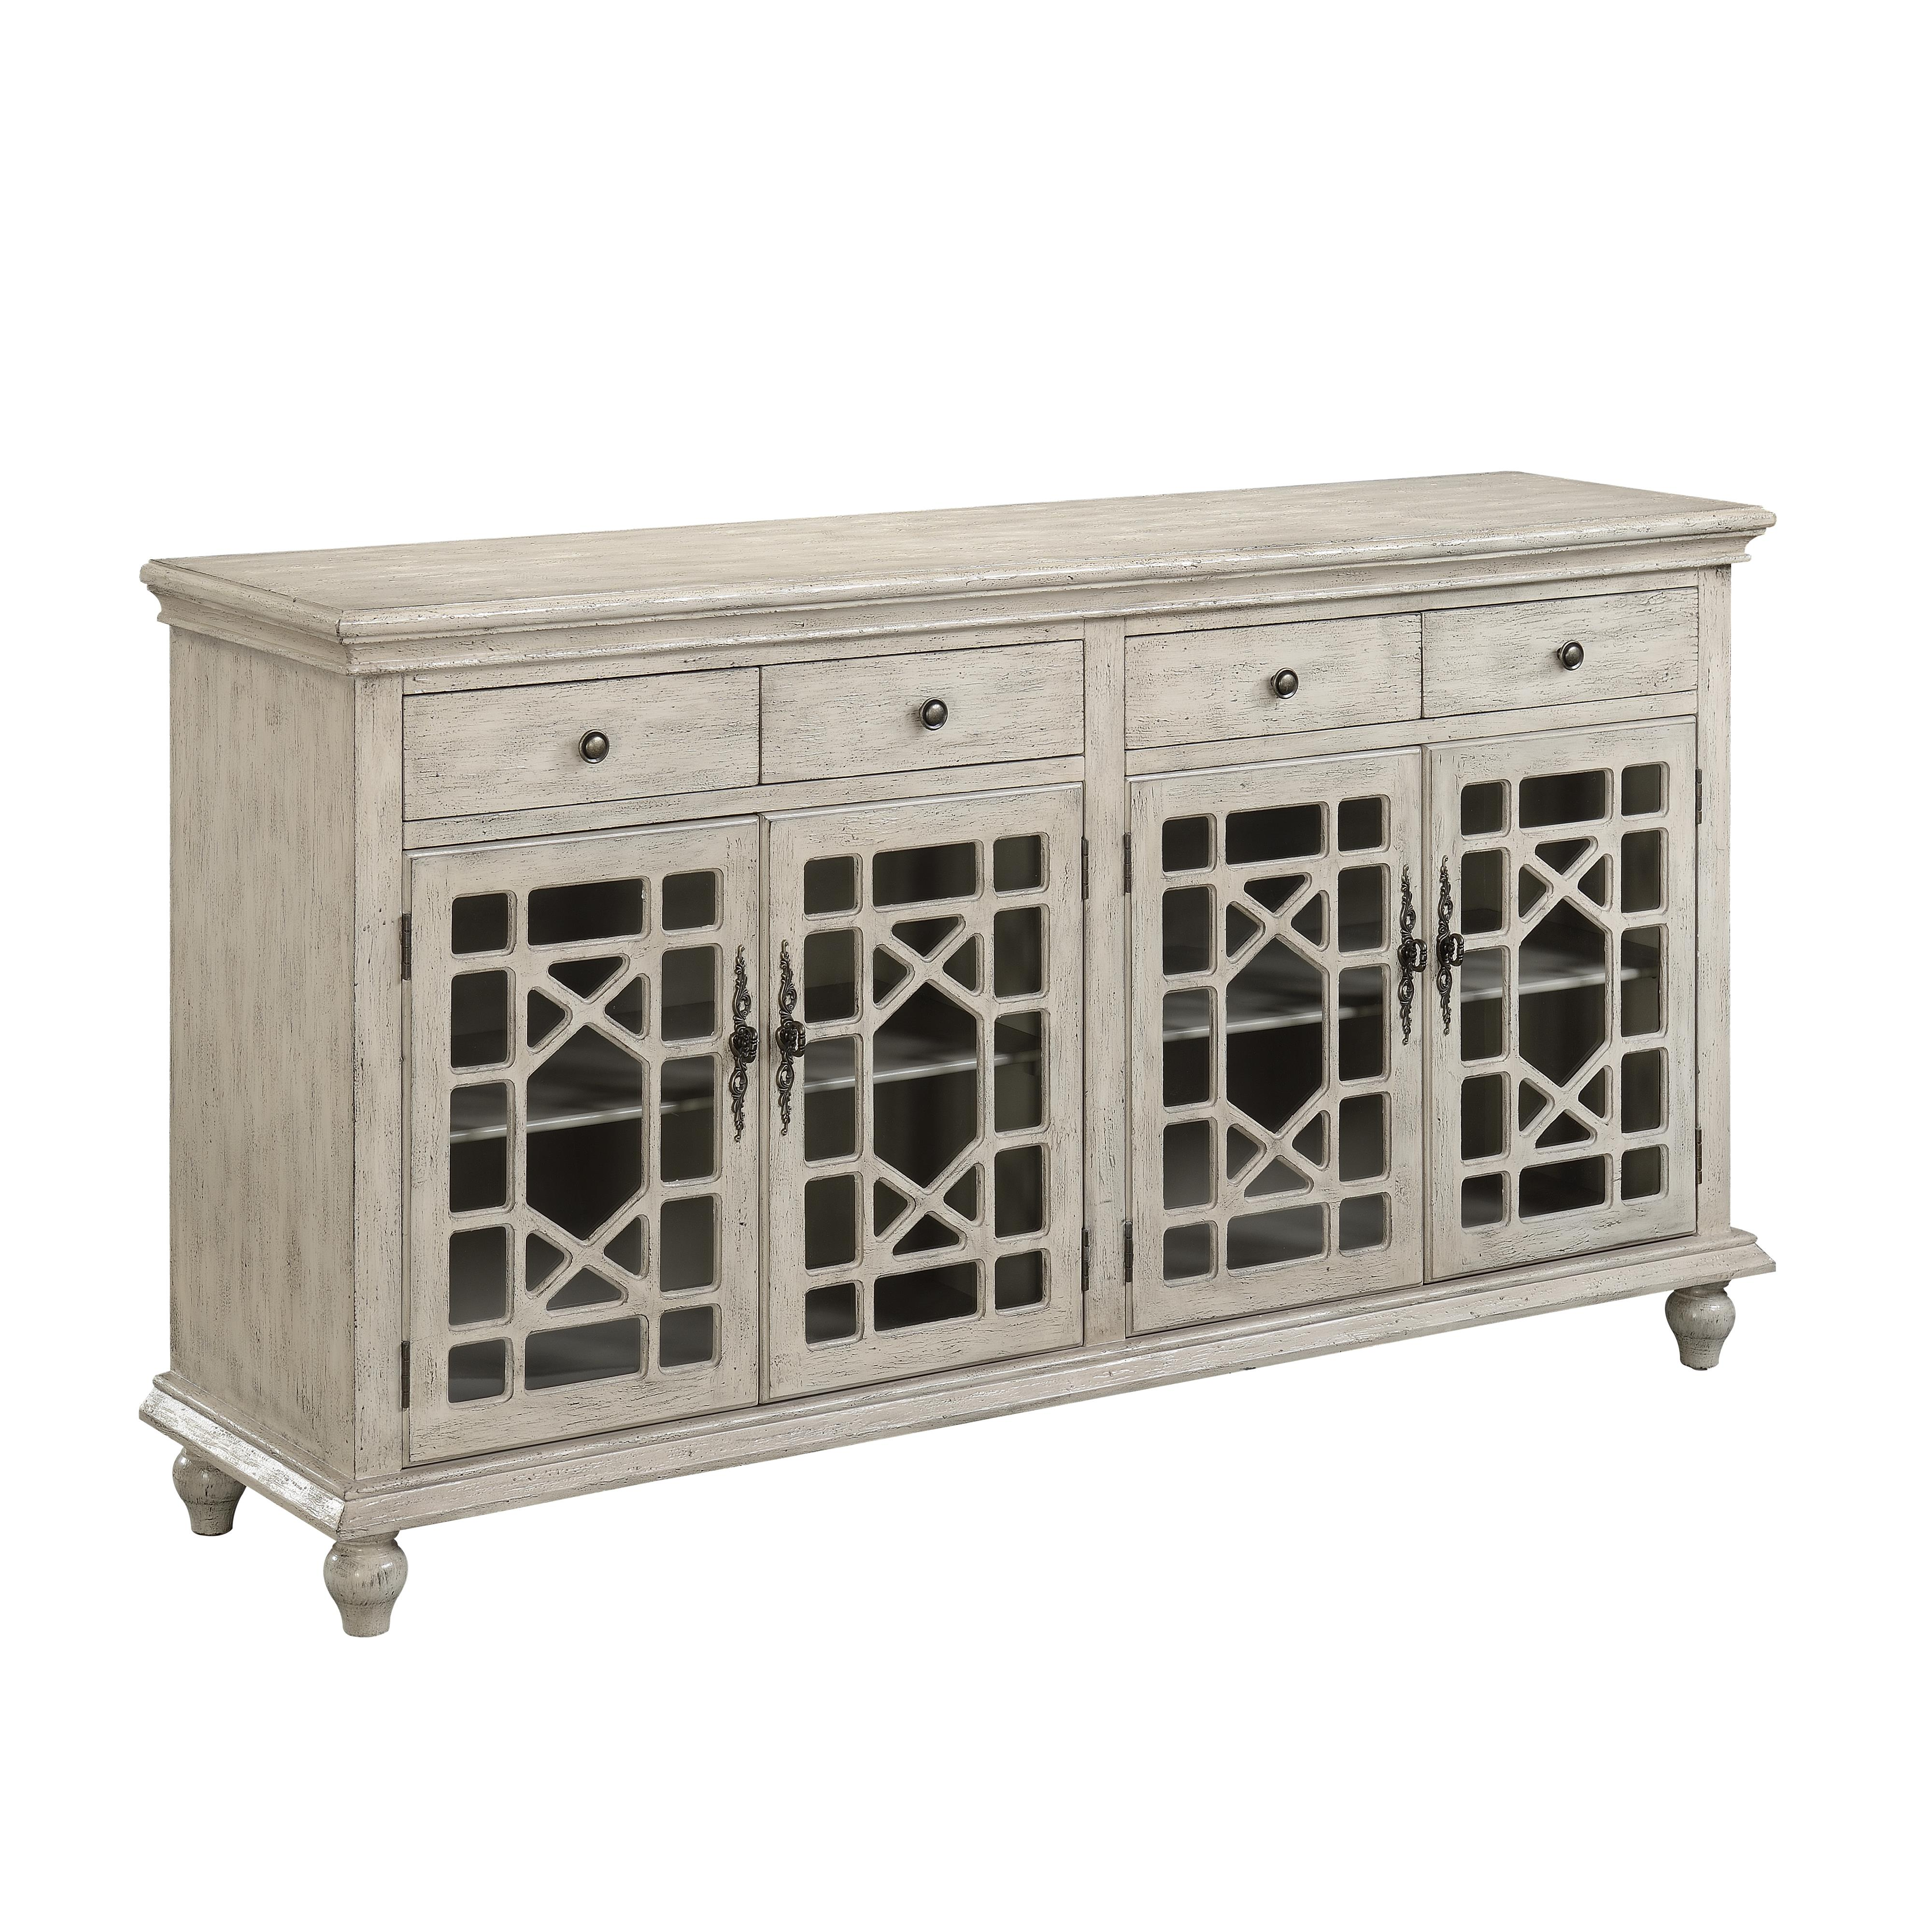 Coast to Coast Imports Coast to Coast Accents Four Door Four Drawer Media Credenza - Item Number: 70828